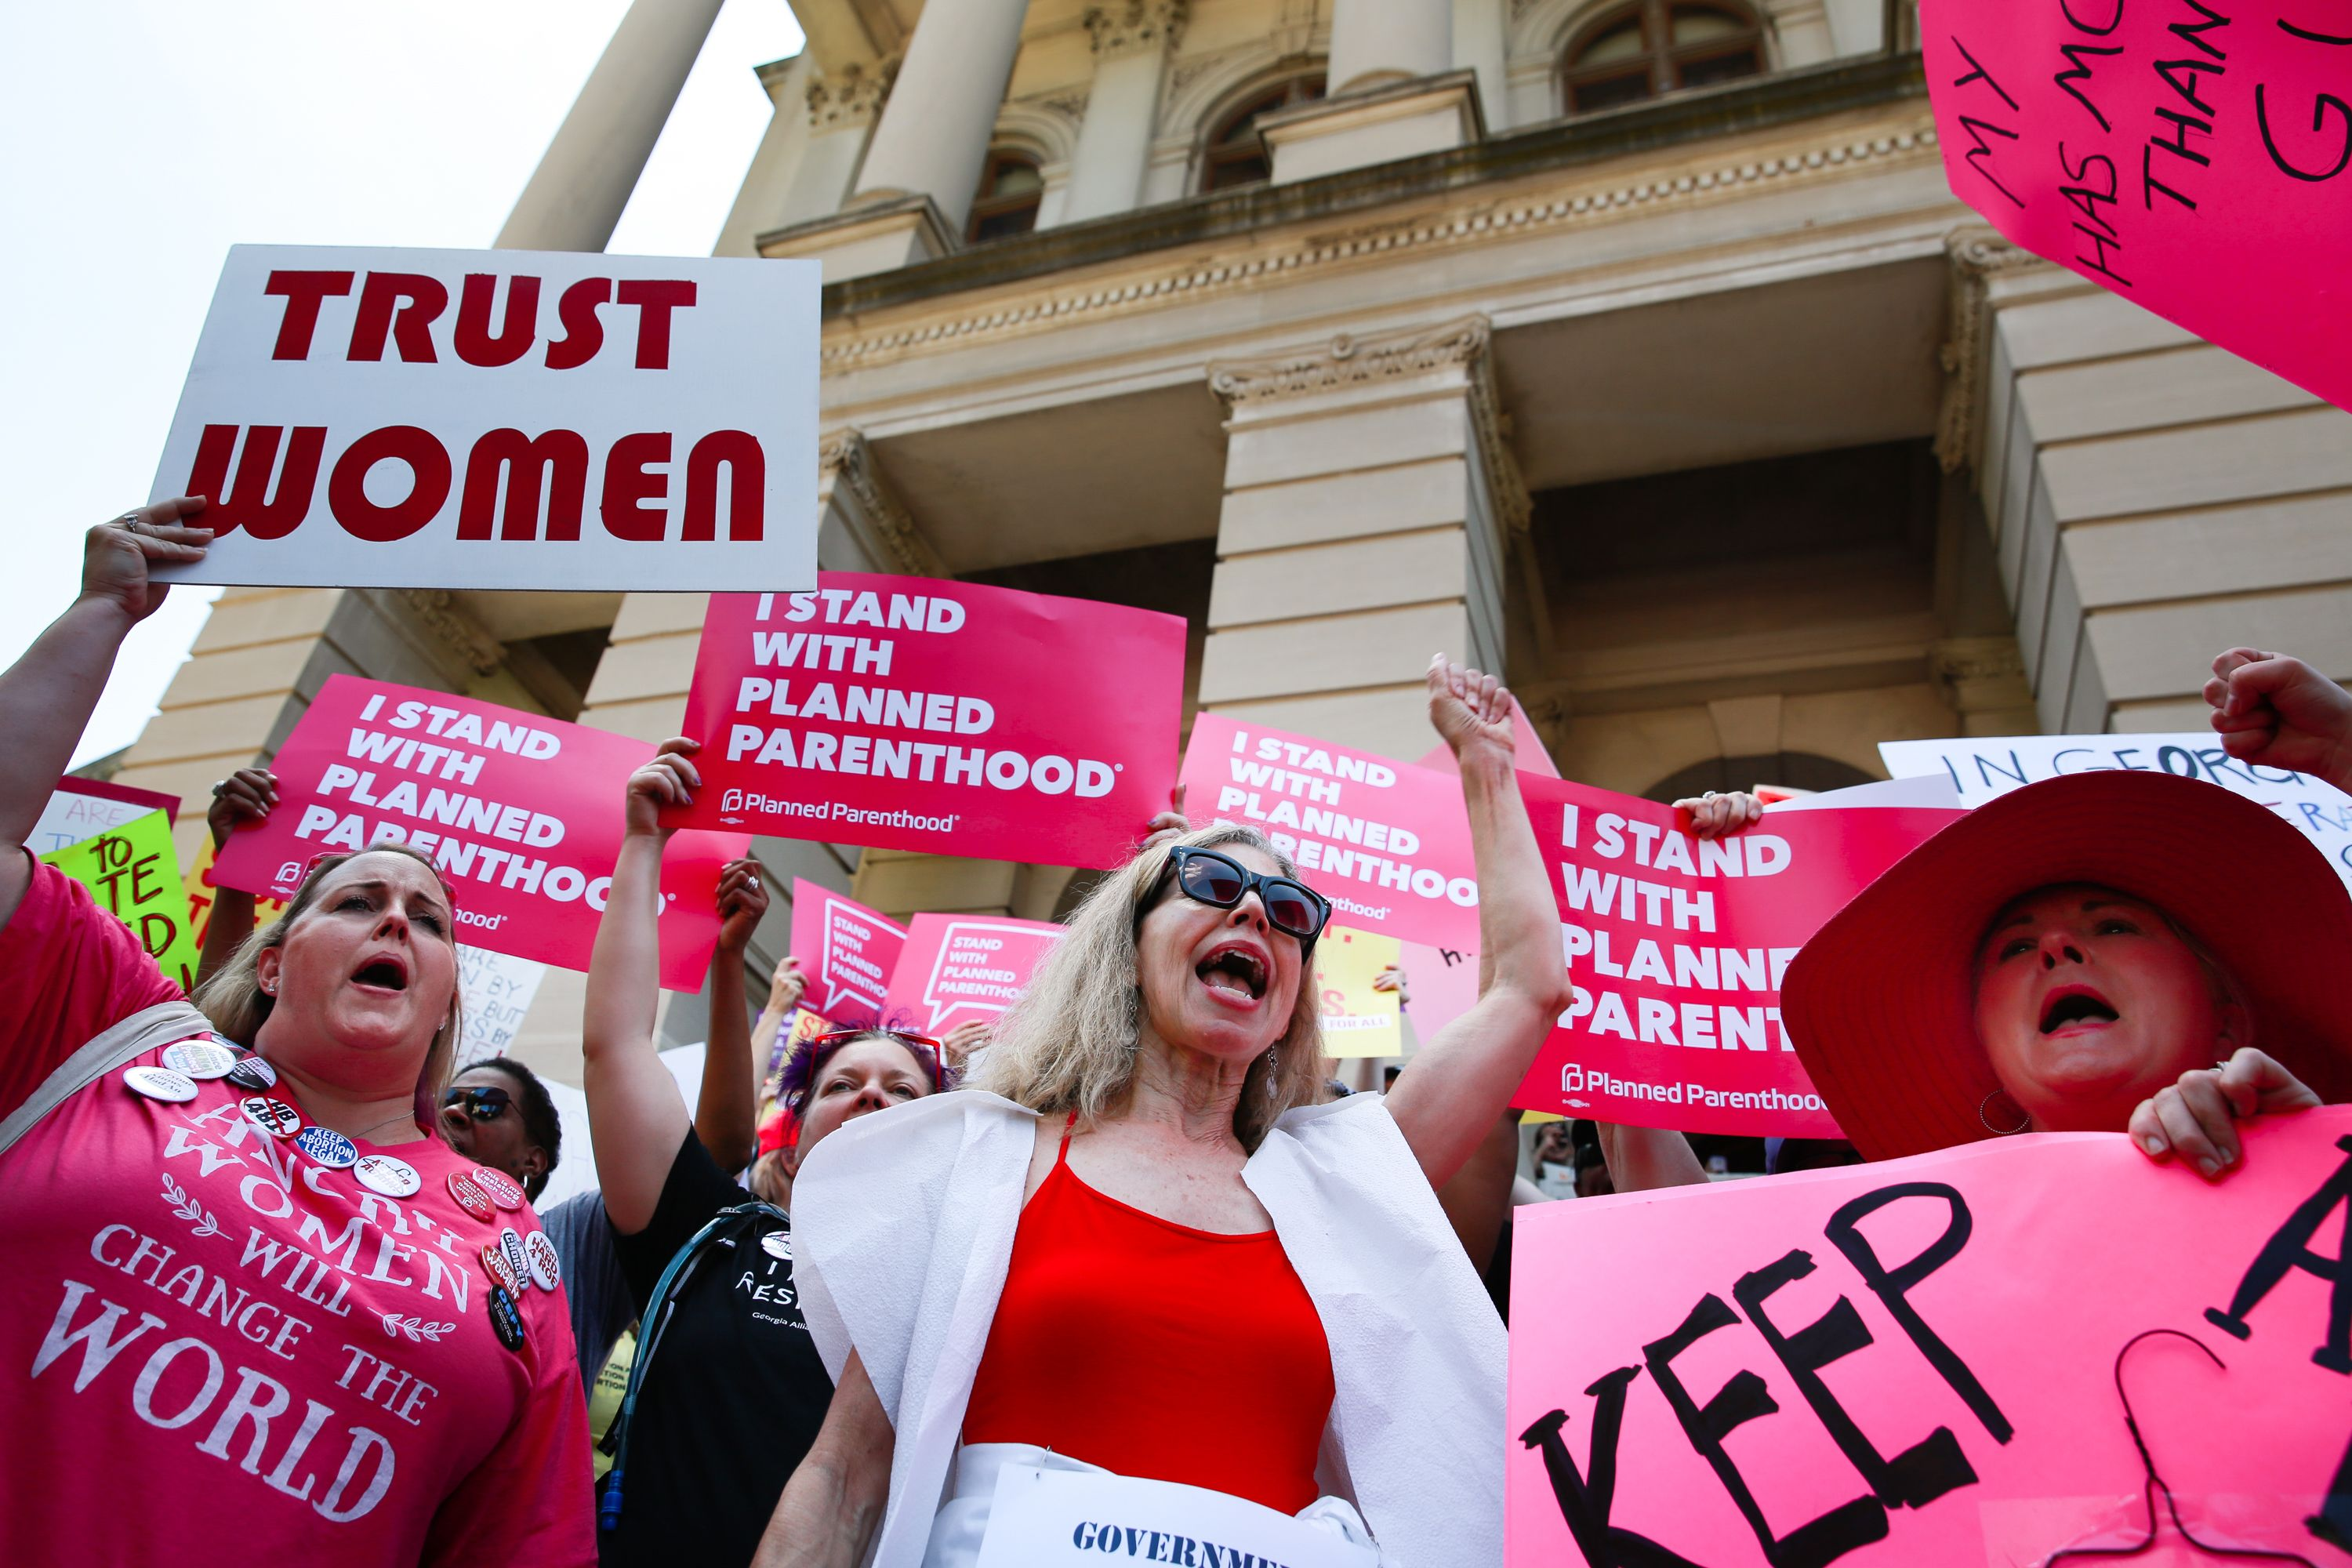 17 Moving Photos From the #StopTheBans Protests Across the Country